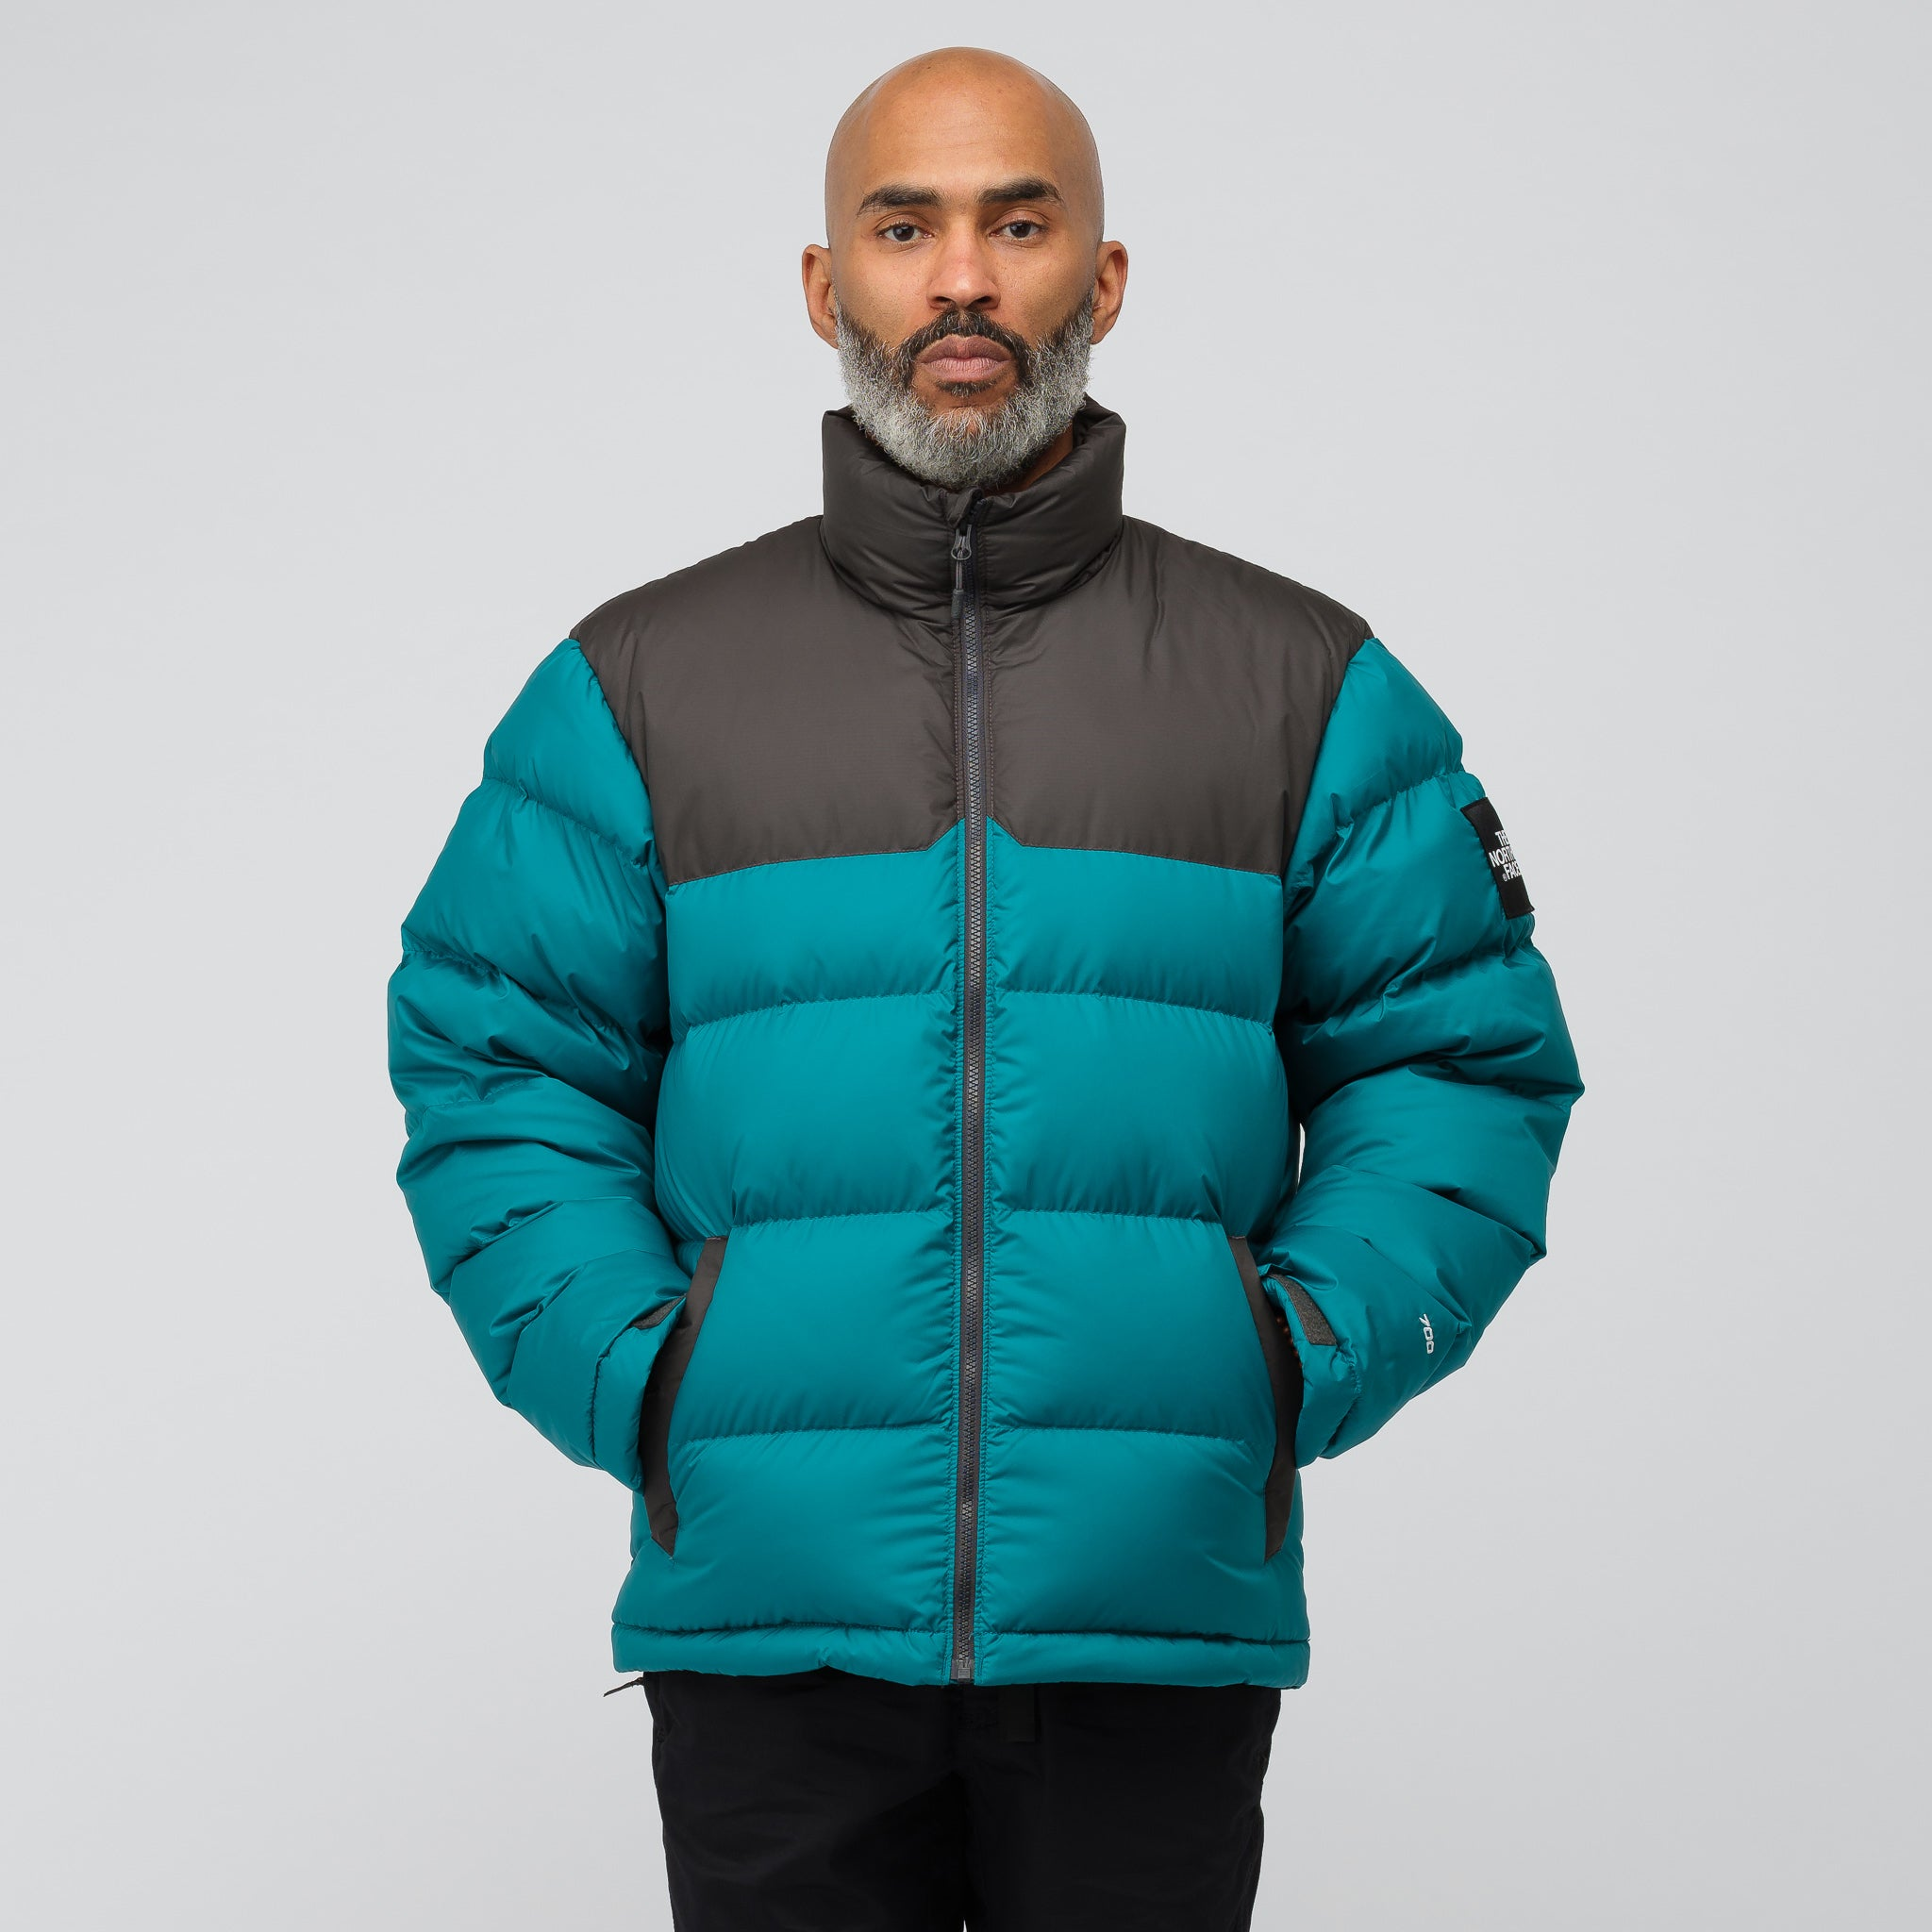 9f8be49c288a The North Face Black Label 92 Nuptse Jacket in Everglade